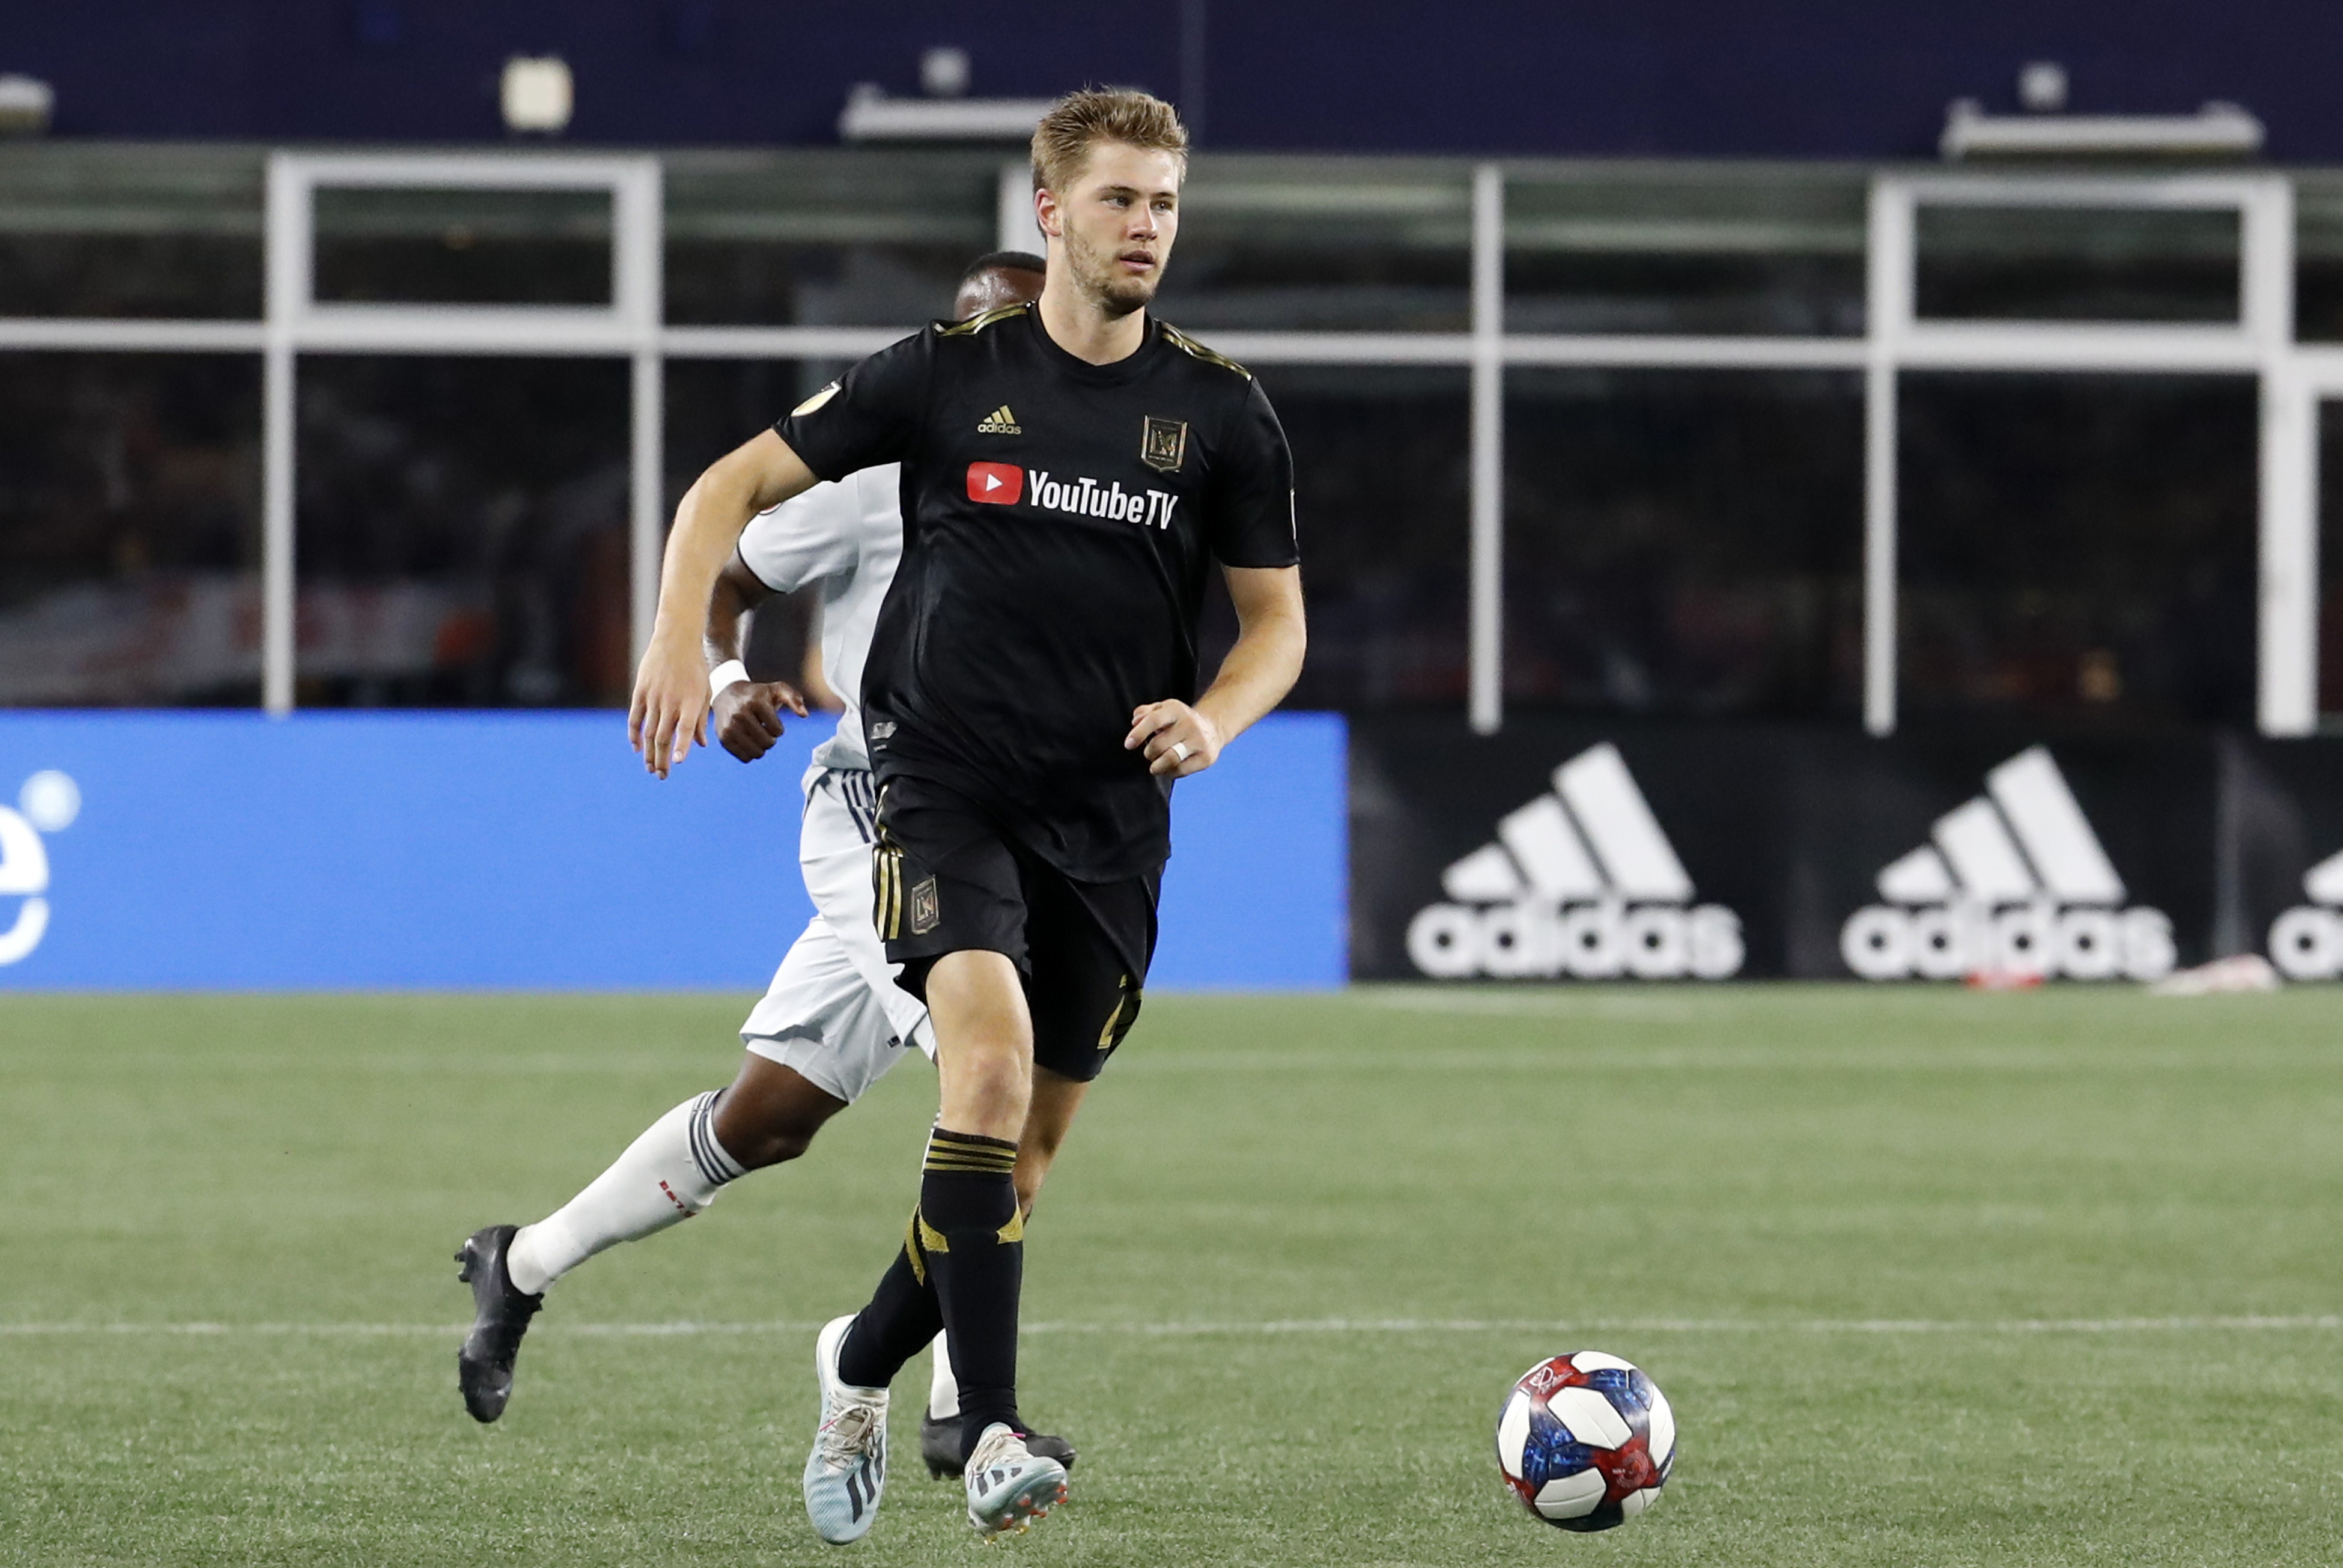 SOCCER: AUG 03 MLS - LAFC at New England Revolution